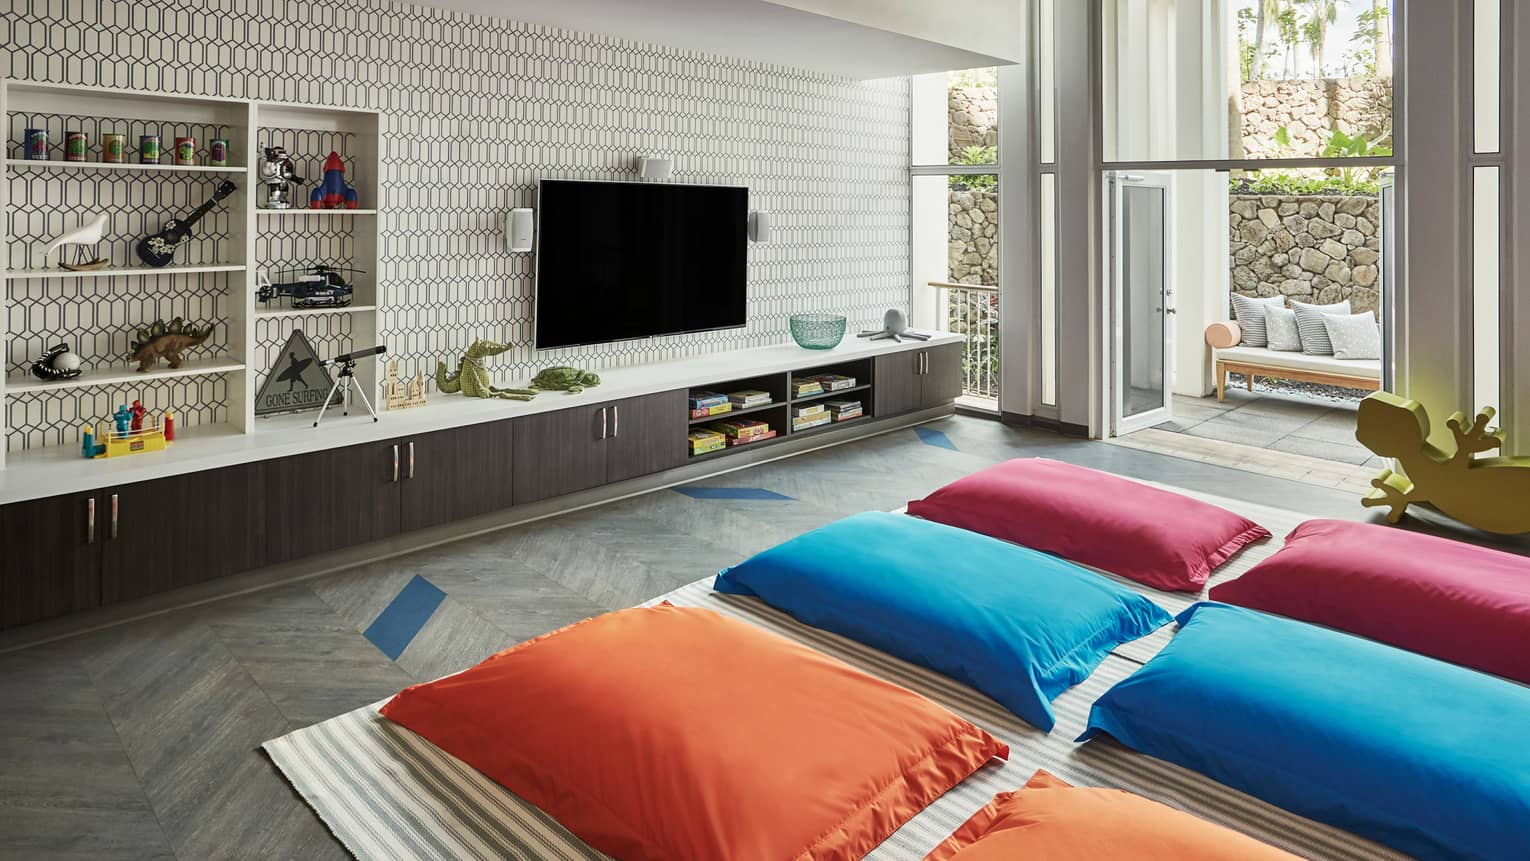 Camp Kohola media lounge with red, blue and orange pillows on floor facing TV